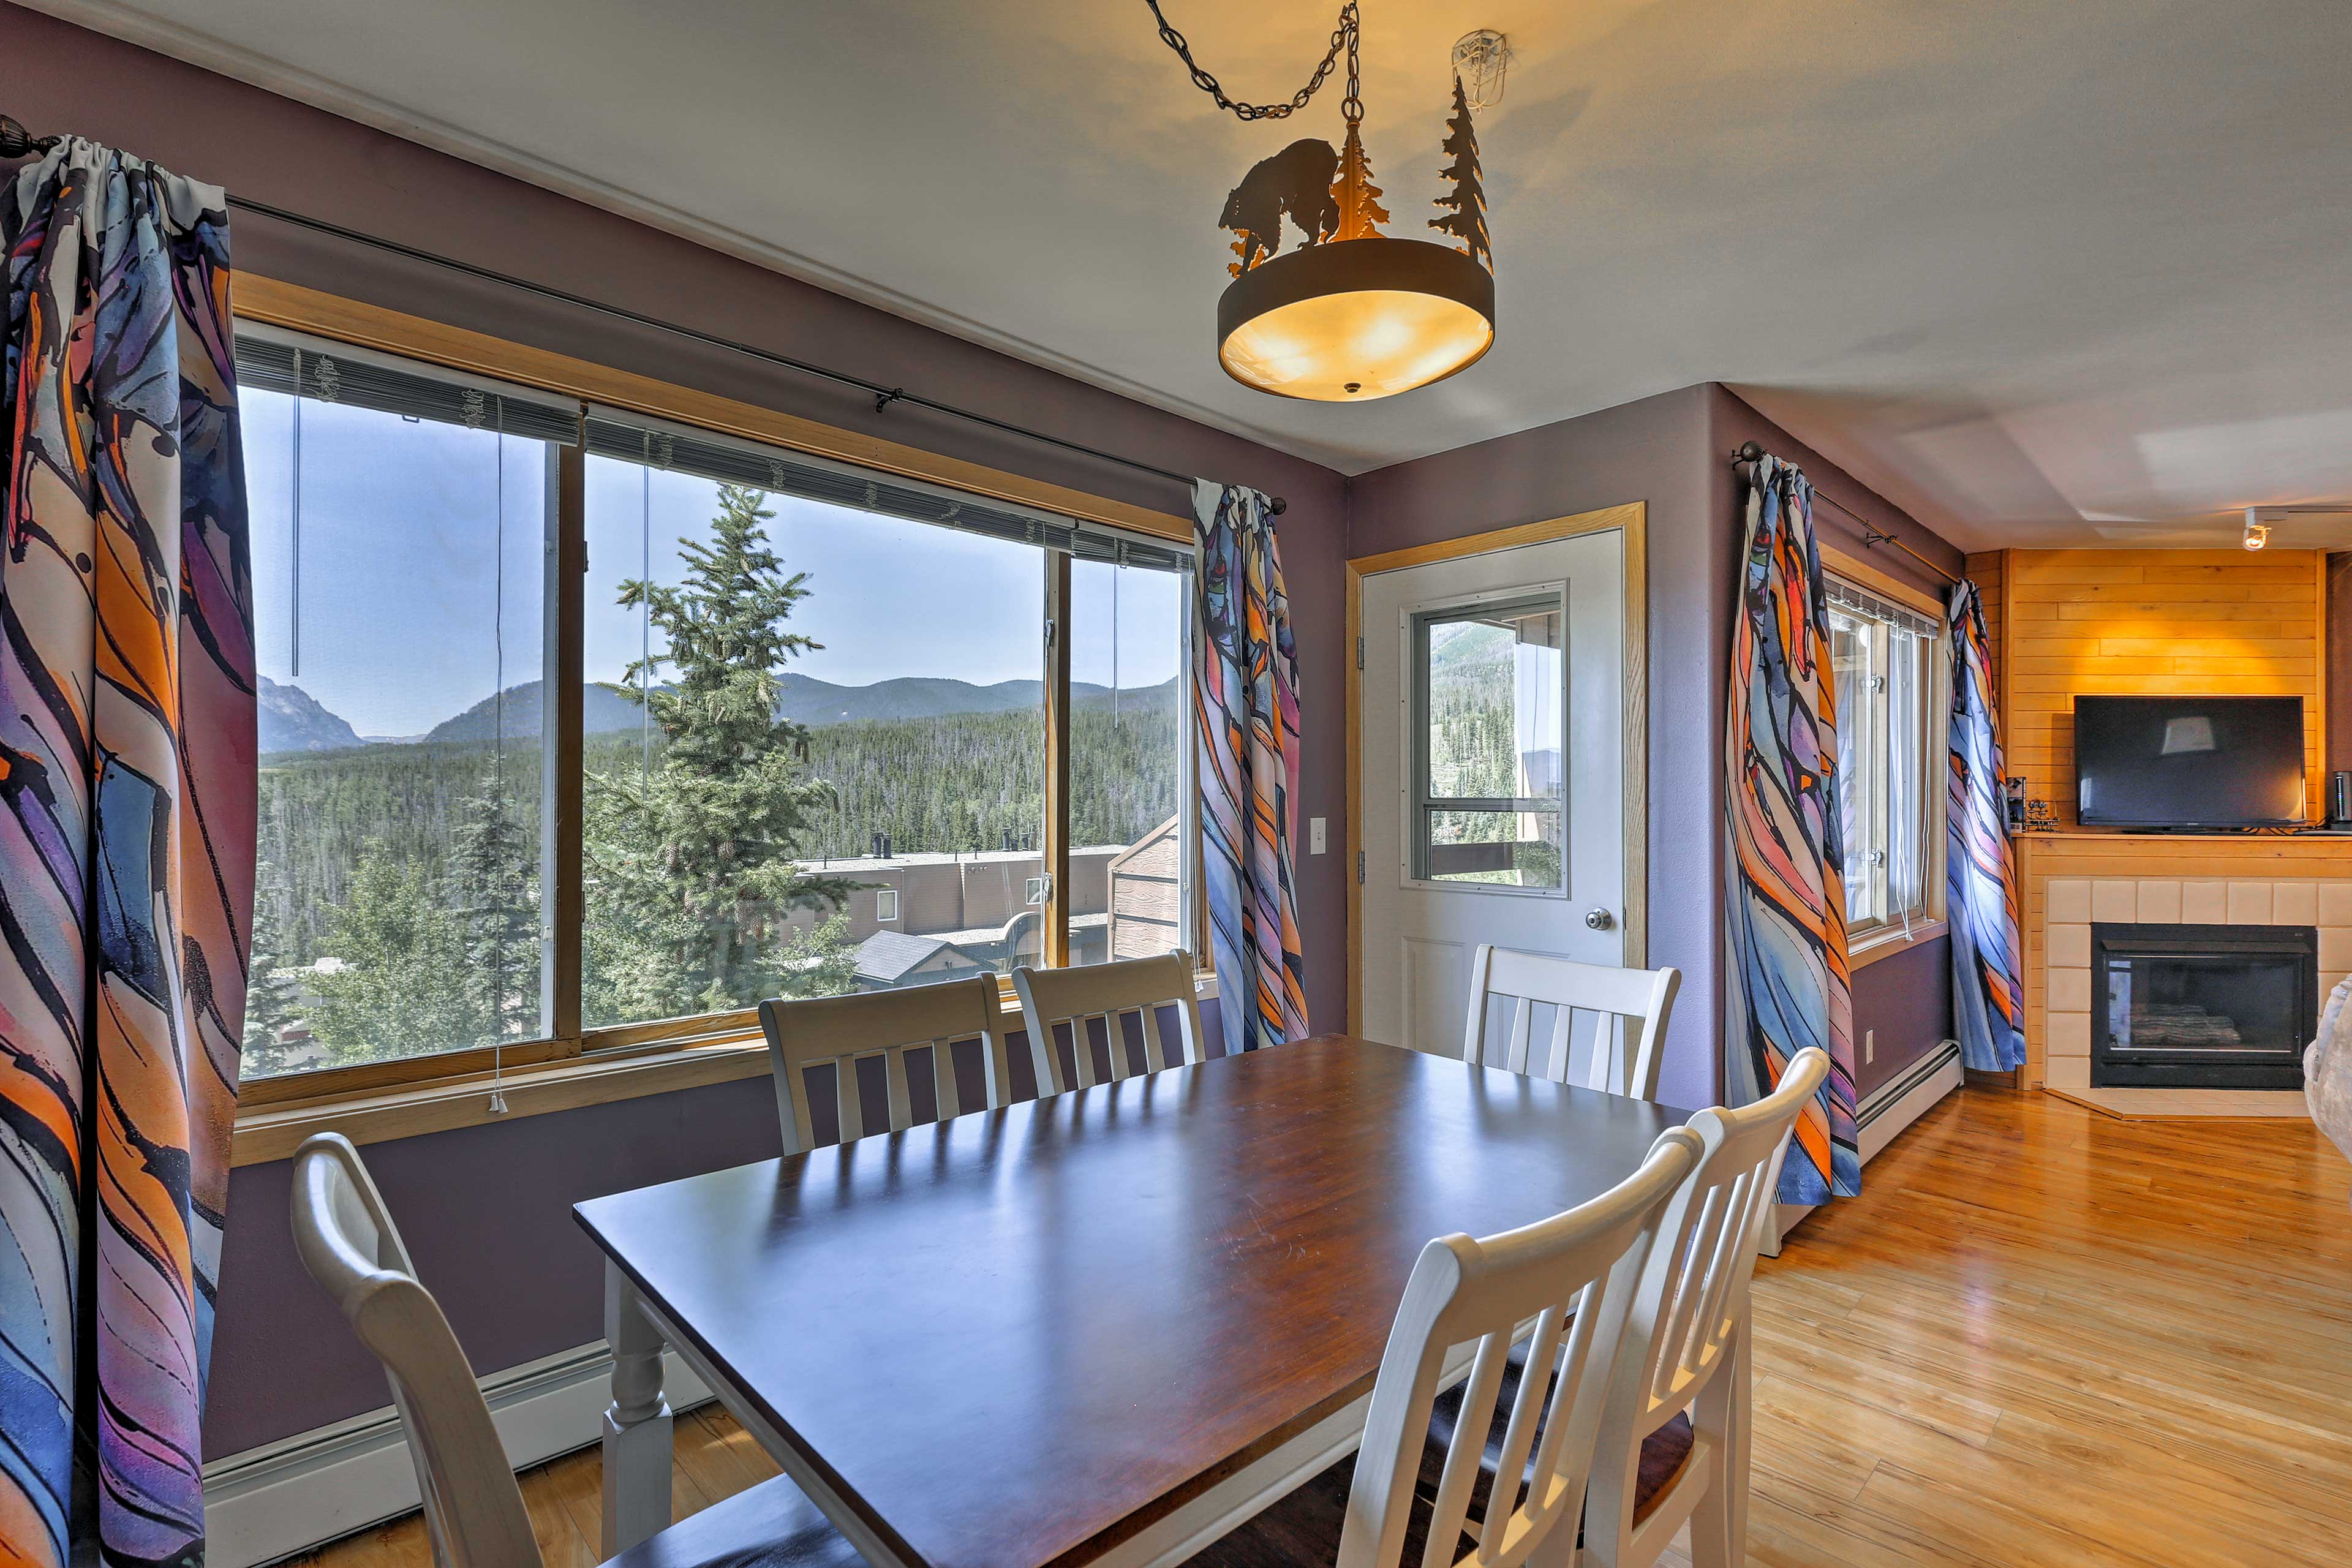 Enjoy dinner with a view at the 6-person table.